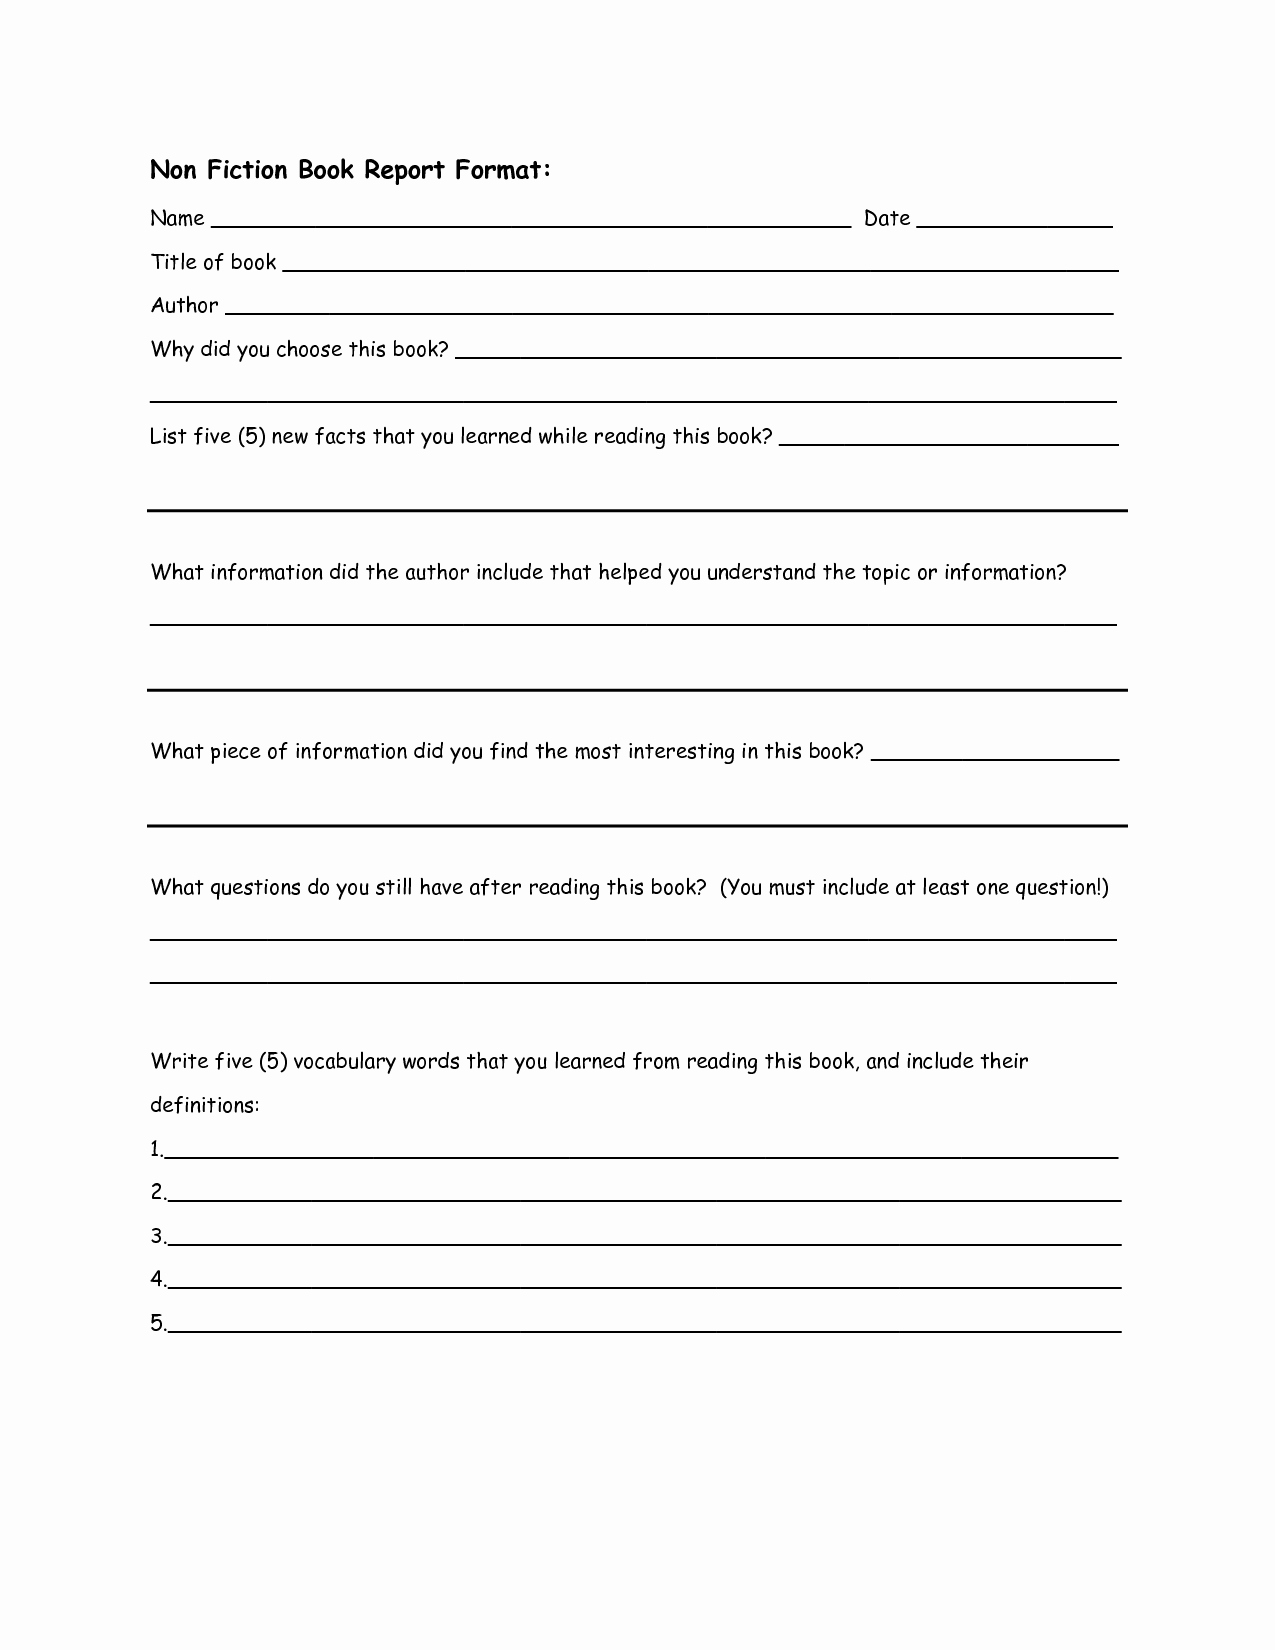 Non Fiction Book Outline Elegant Non Fiction Book Report format 2nd Grade